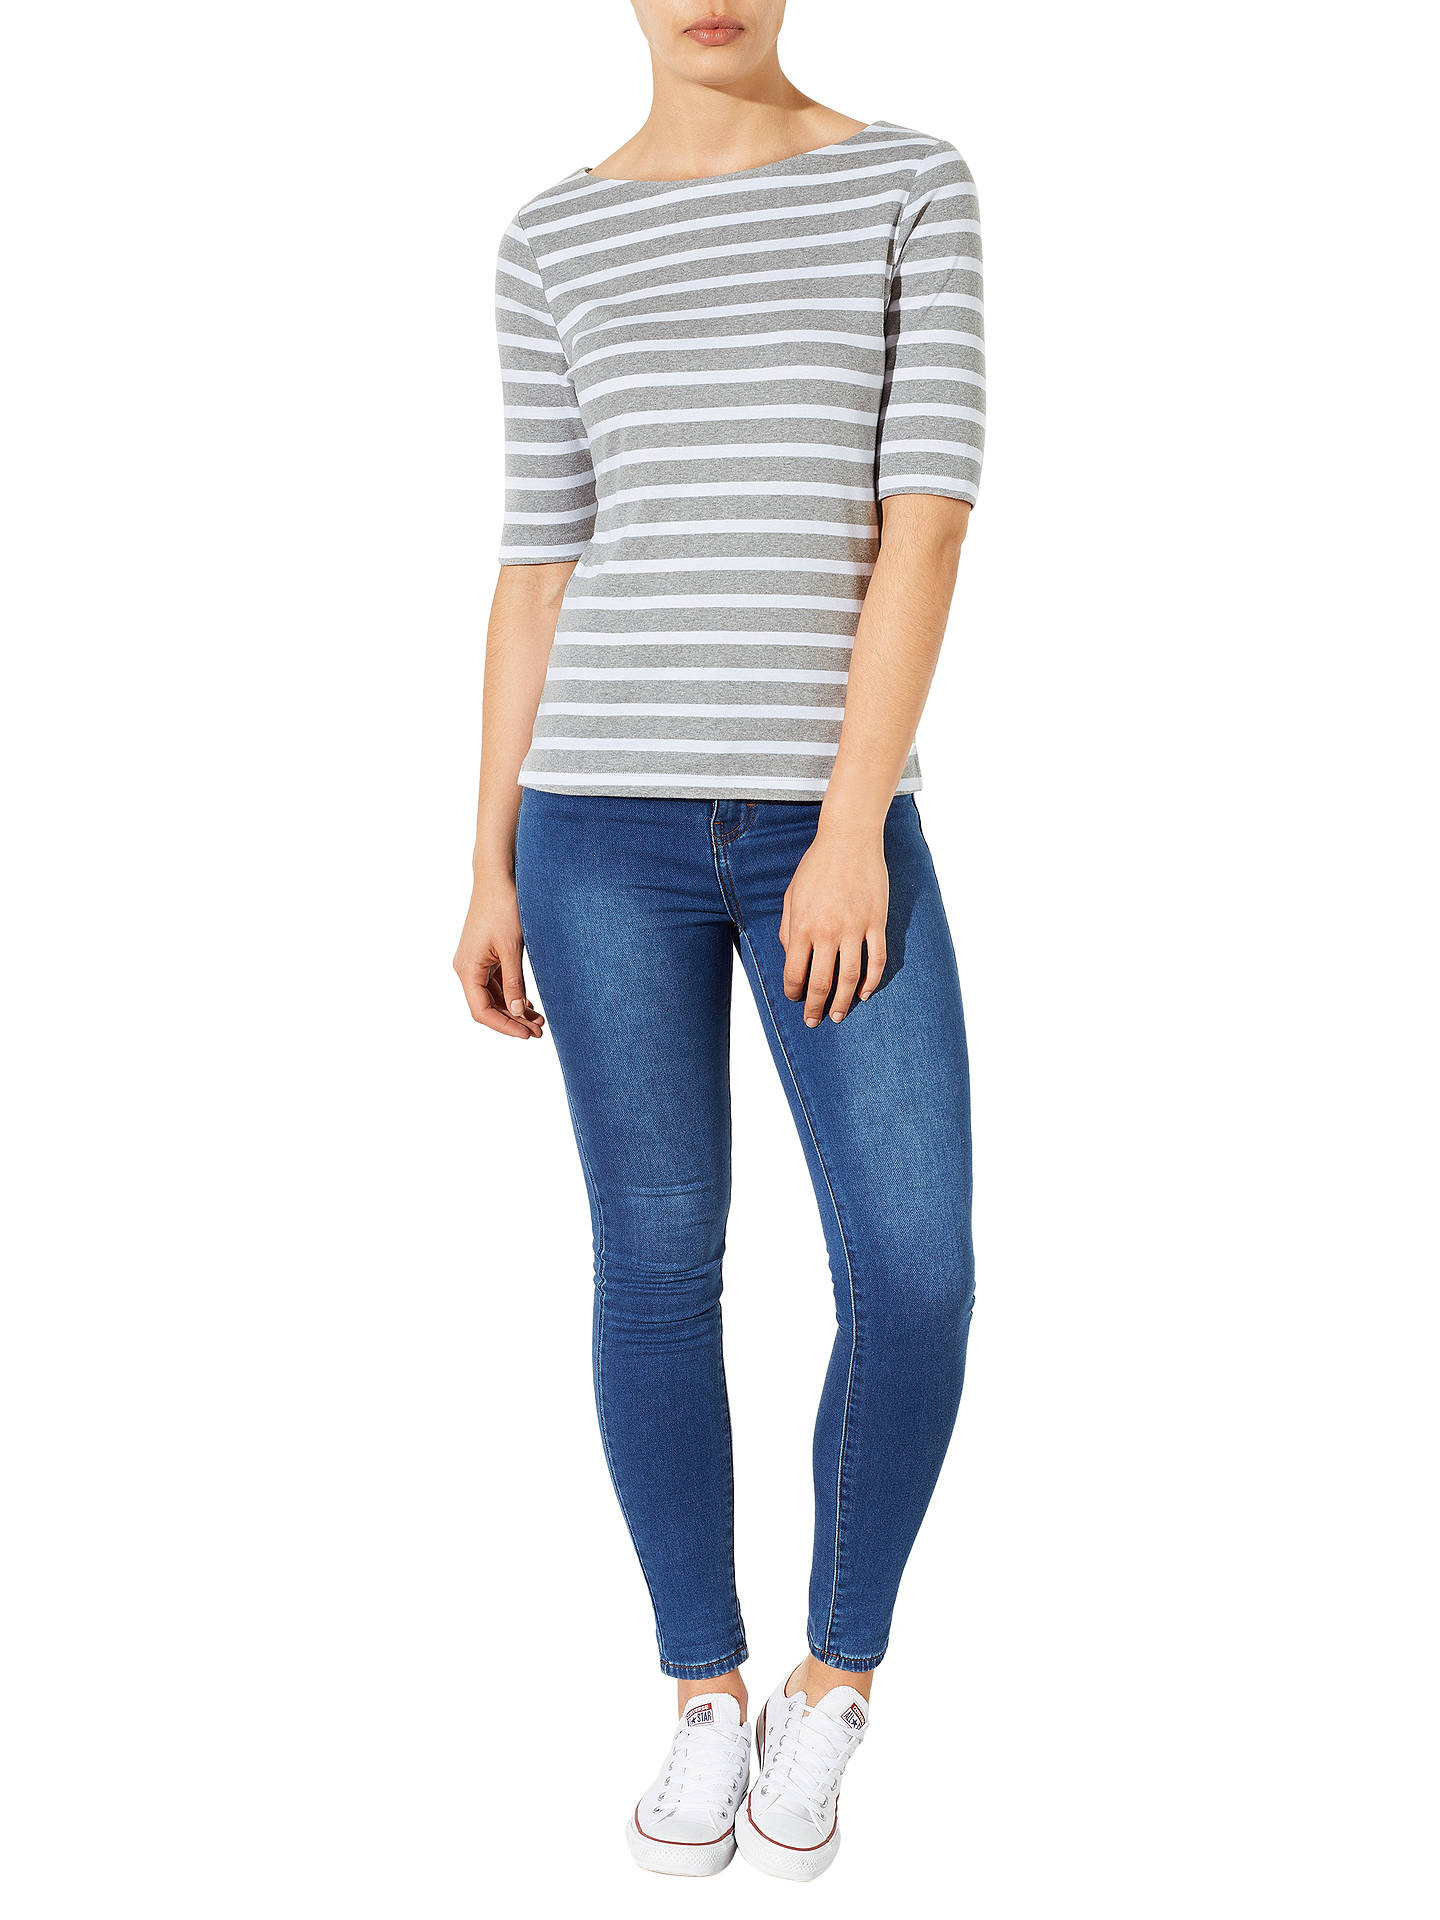 BuyJohn Lewis & Partners Half-Sleeve Breton Stripe Top, Grey/White, 10 Online at johnlewis.com